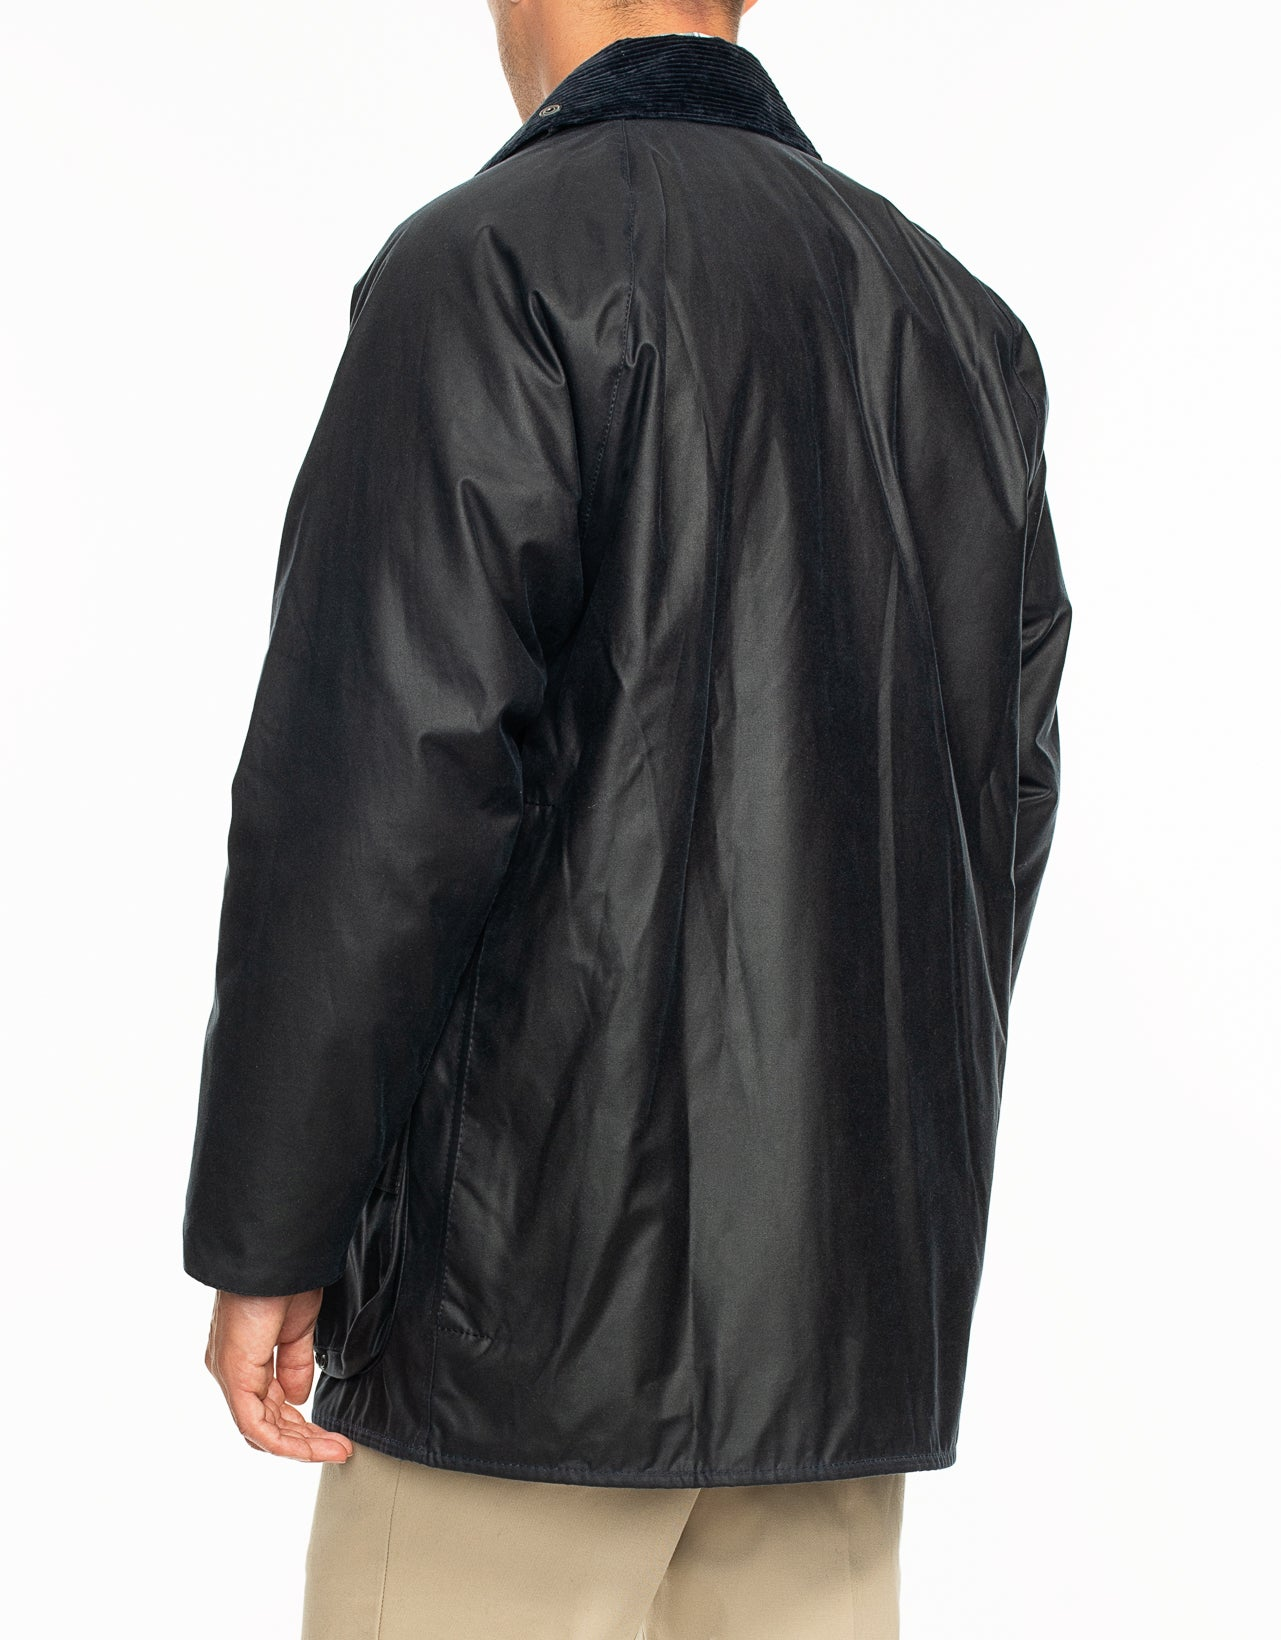 BEAUFORT CLASSIC JACKET - NAVY